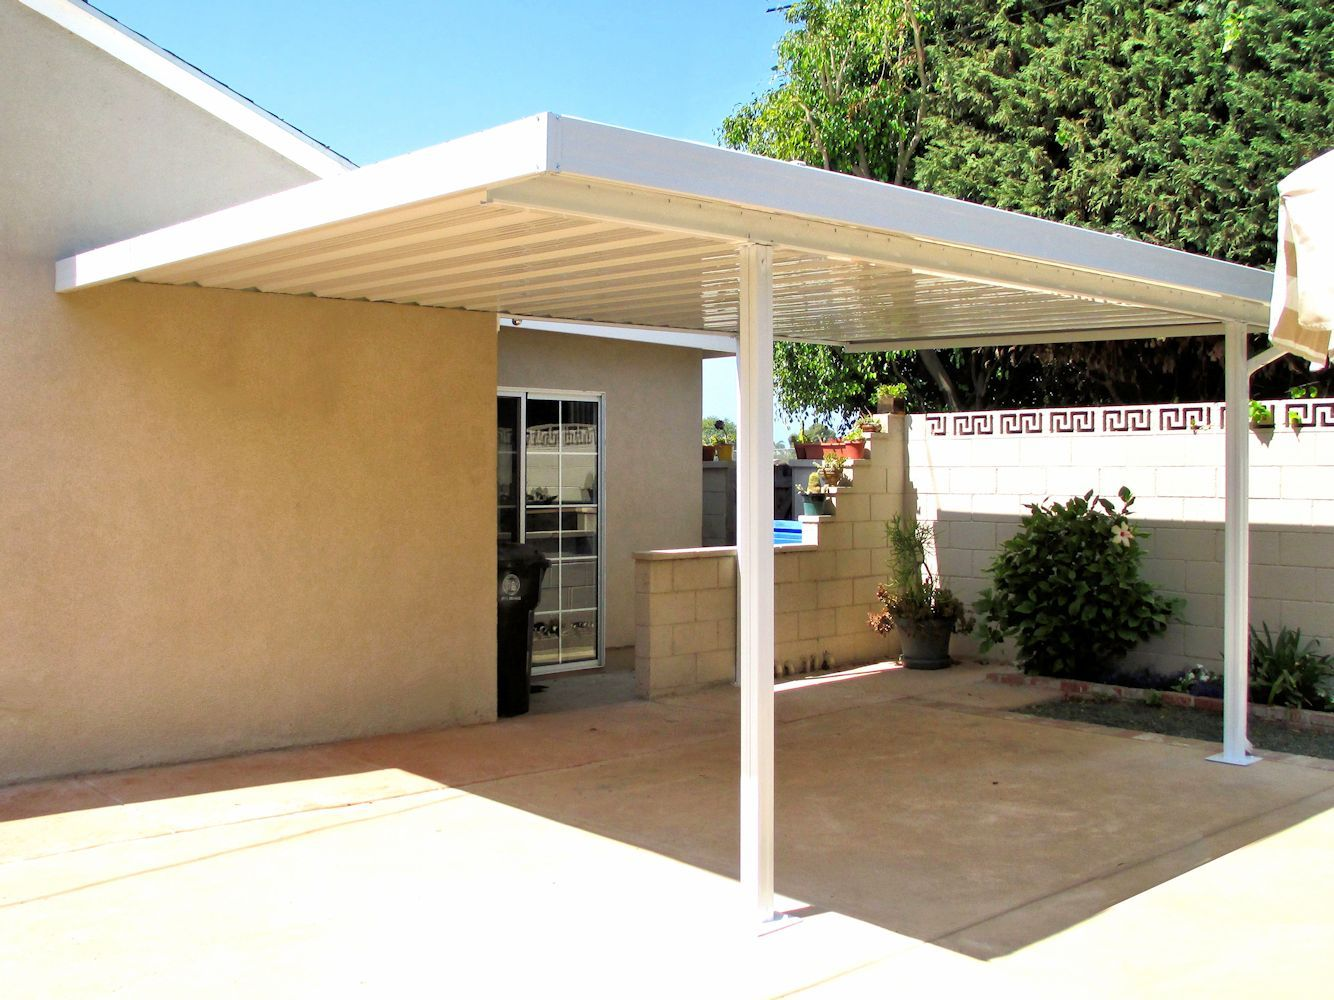 Patio Covers Canopies Carports By Superior Awning Aluminum Carport Aluminum Patio Covers Aluminum Patio